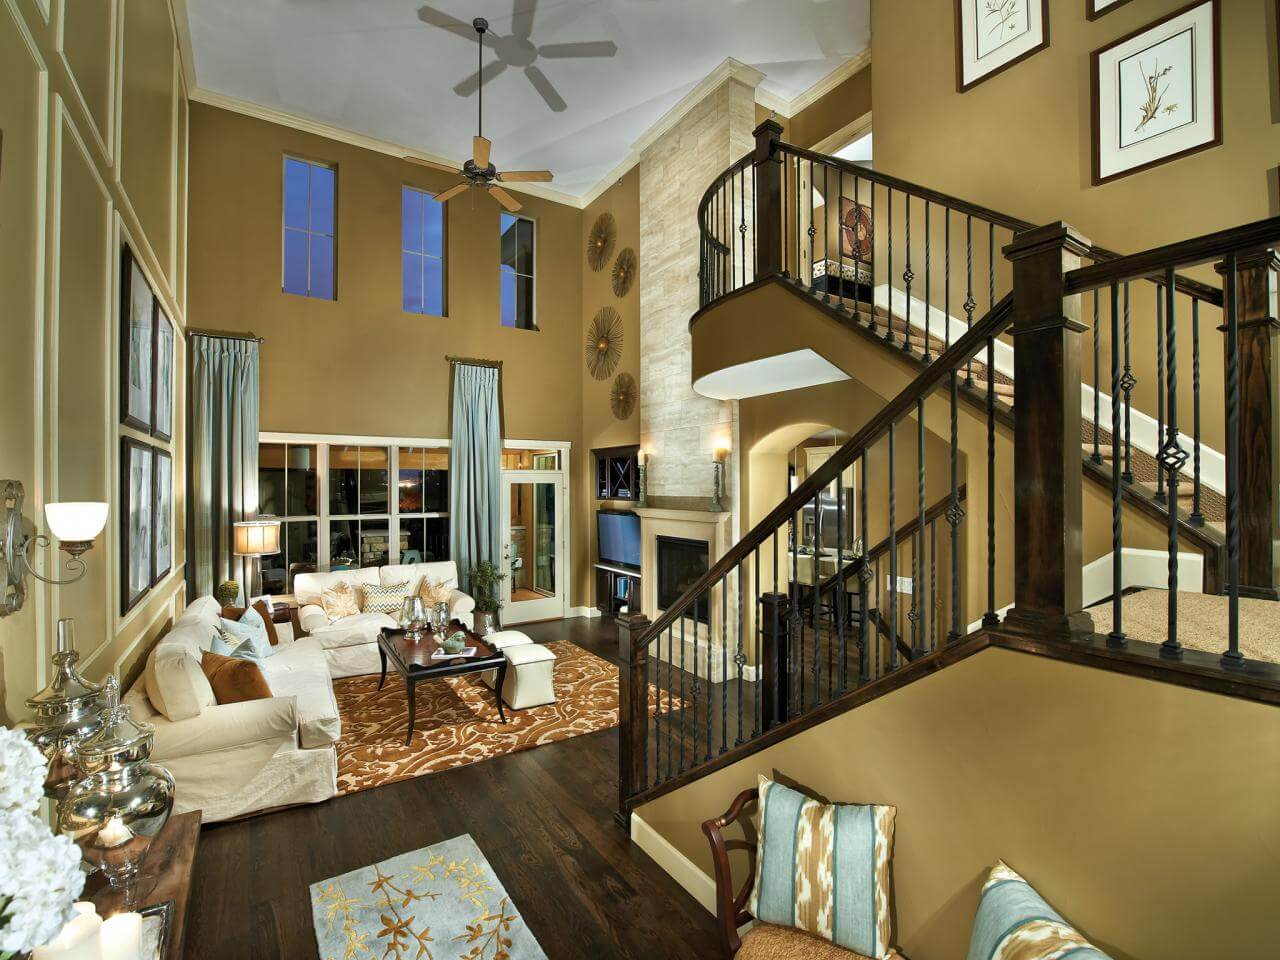 Attractive Interior Designs For Small Houses In the ... on House Interior Ideas  id=13822